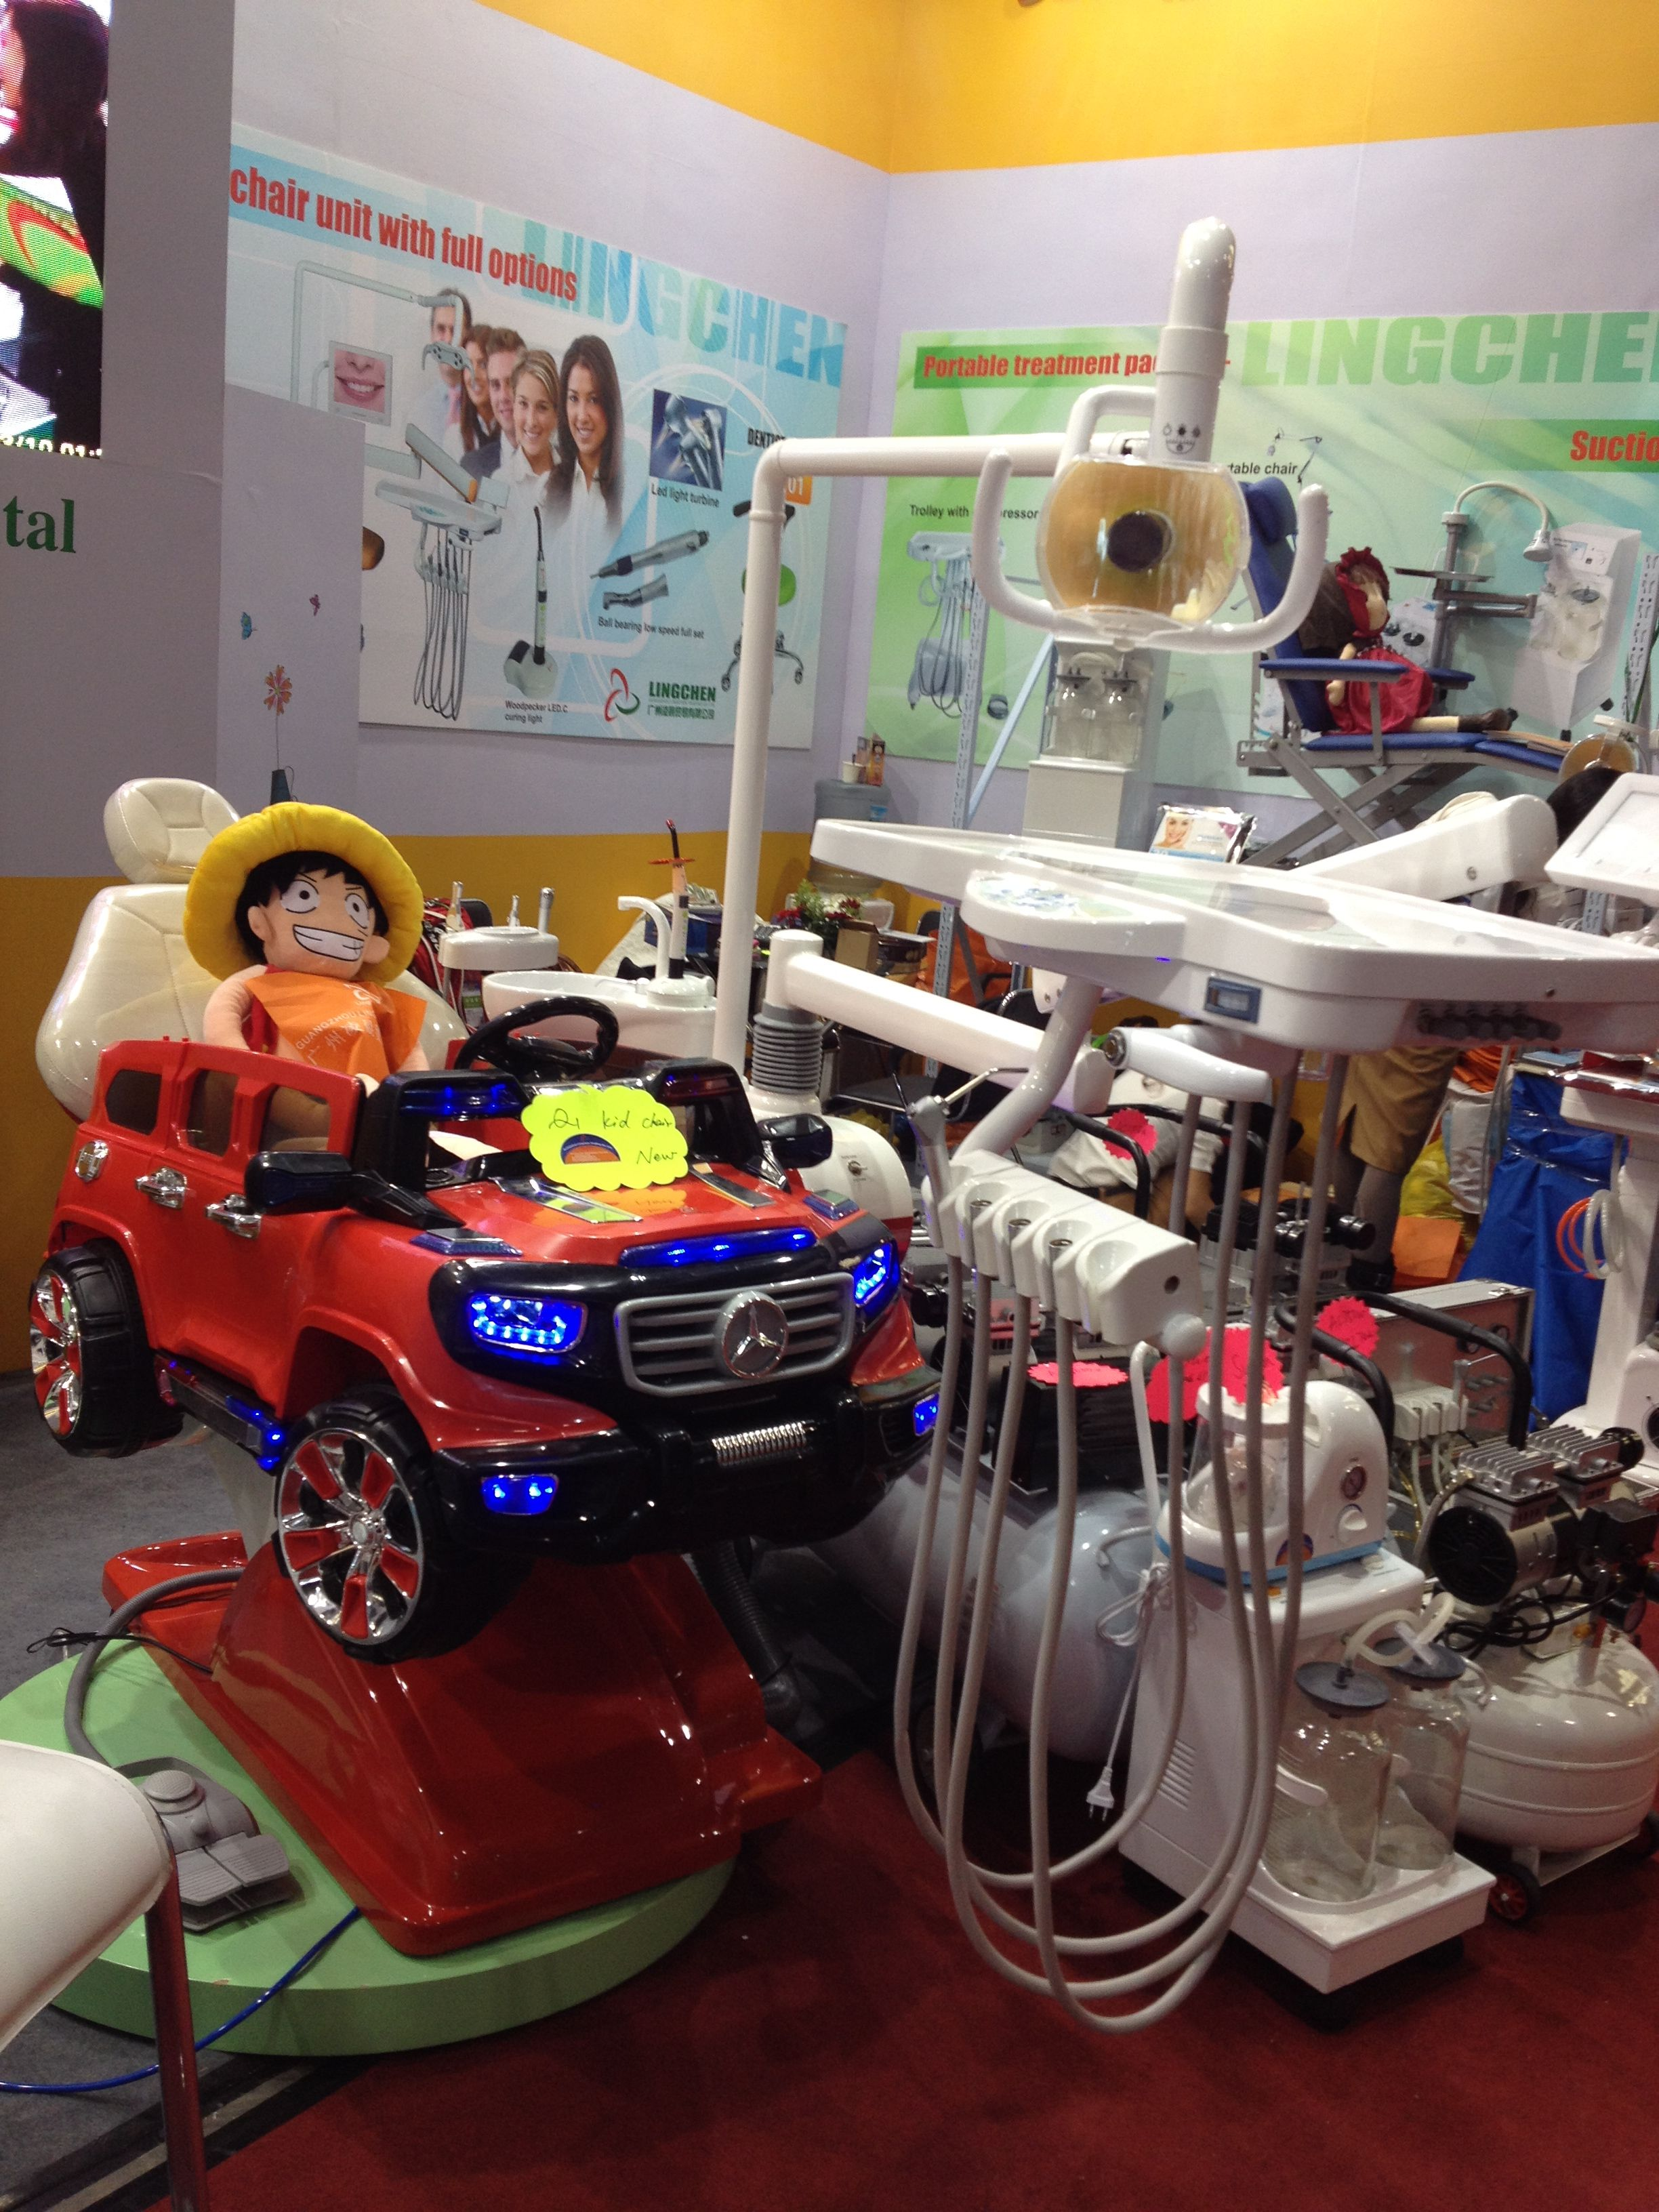 Kids Dental Chair With Cool Looking Kids Would Like It So